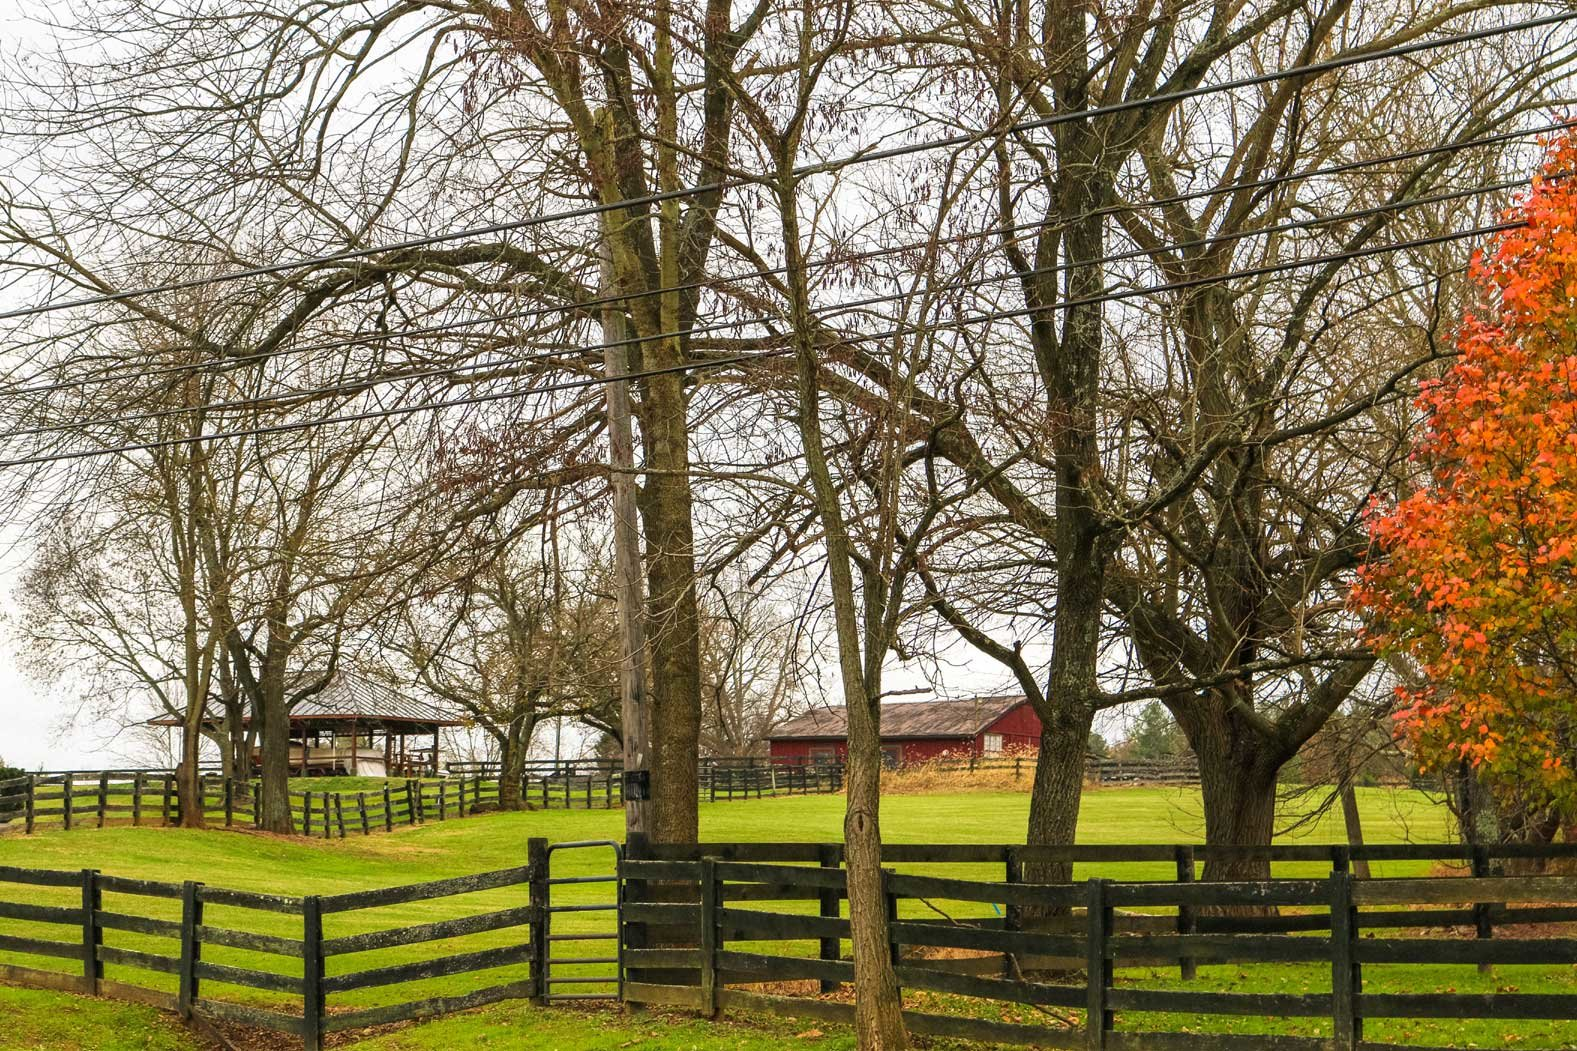 Barns in Aldie